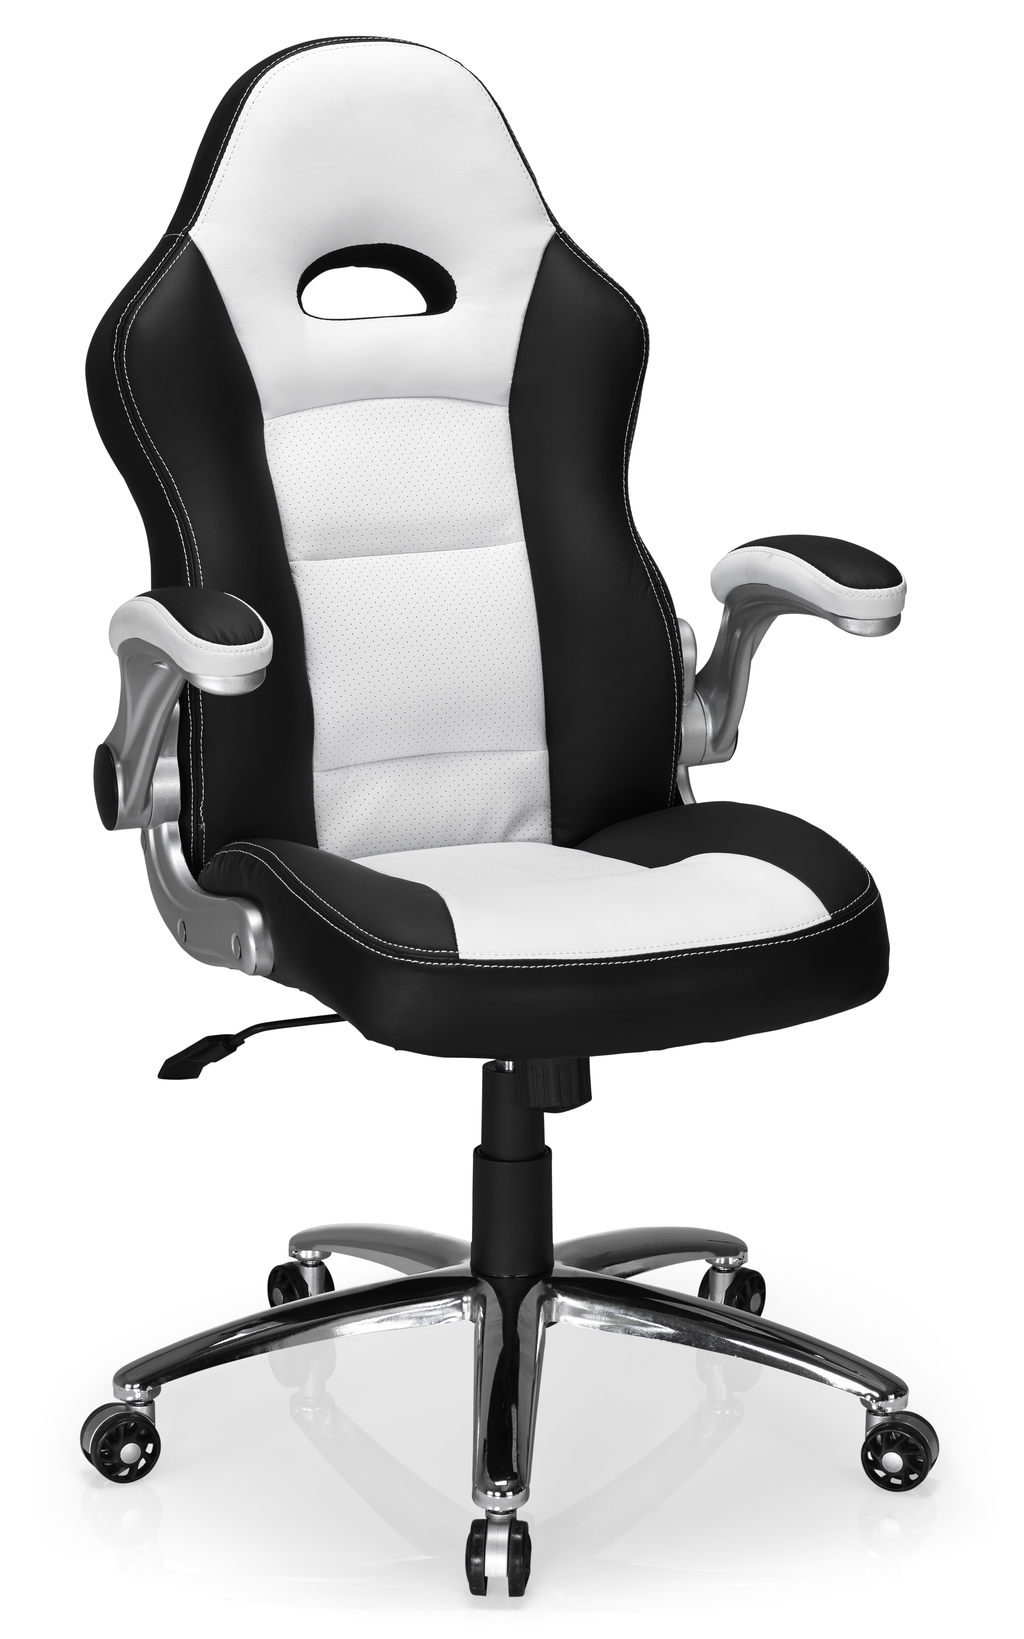 Hummingbird Le Mans Racer Chair Black and White Loving the